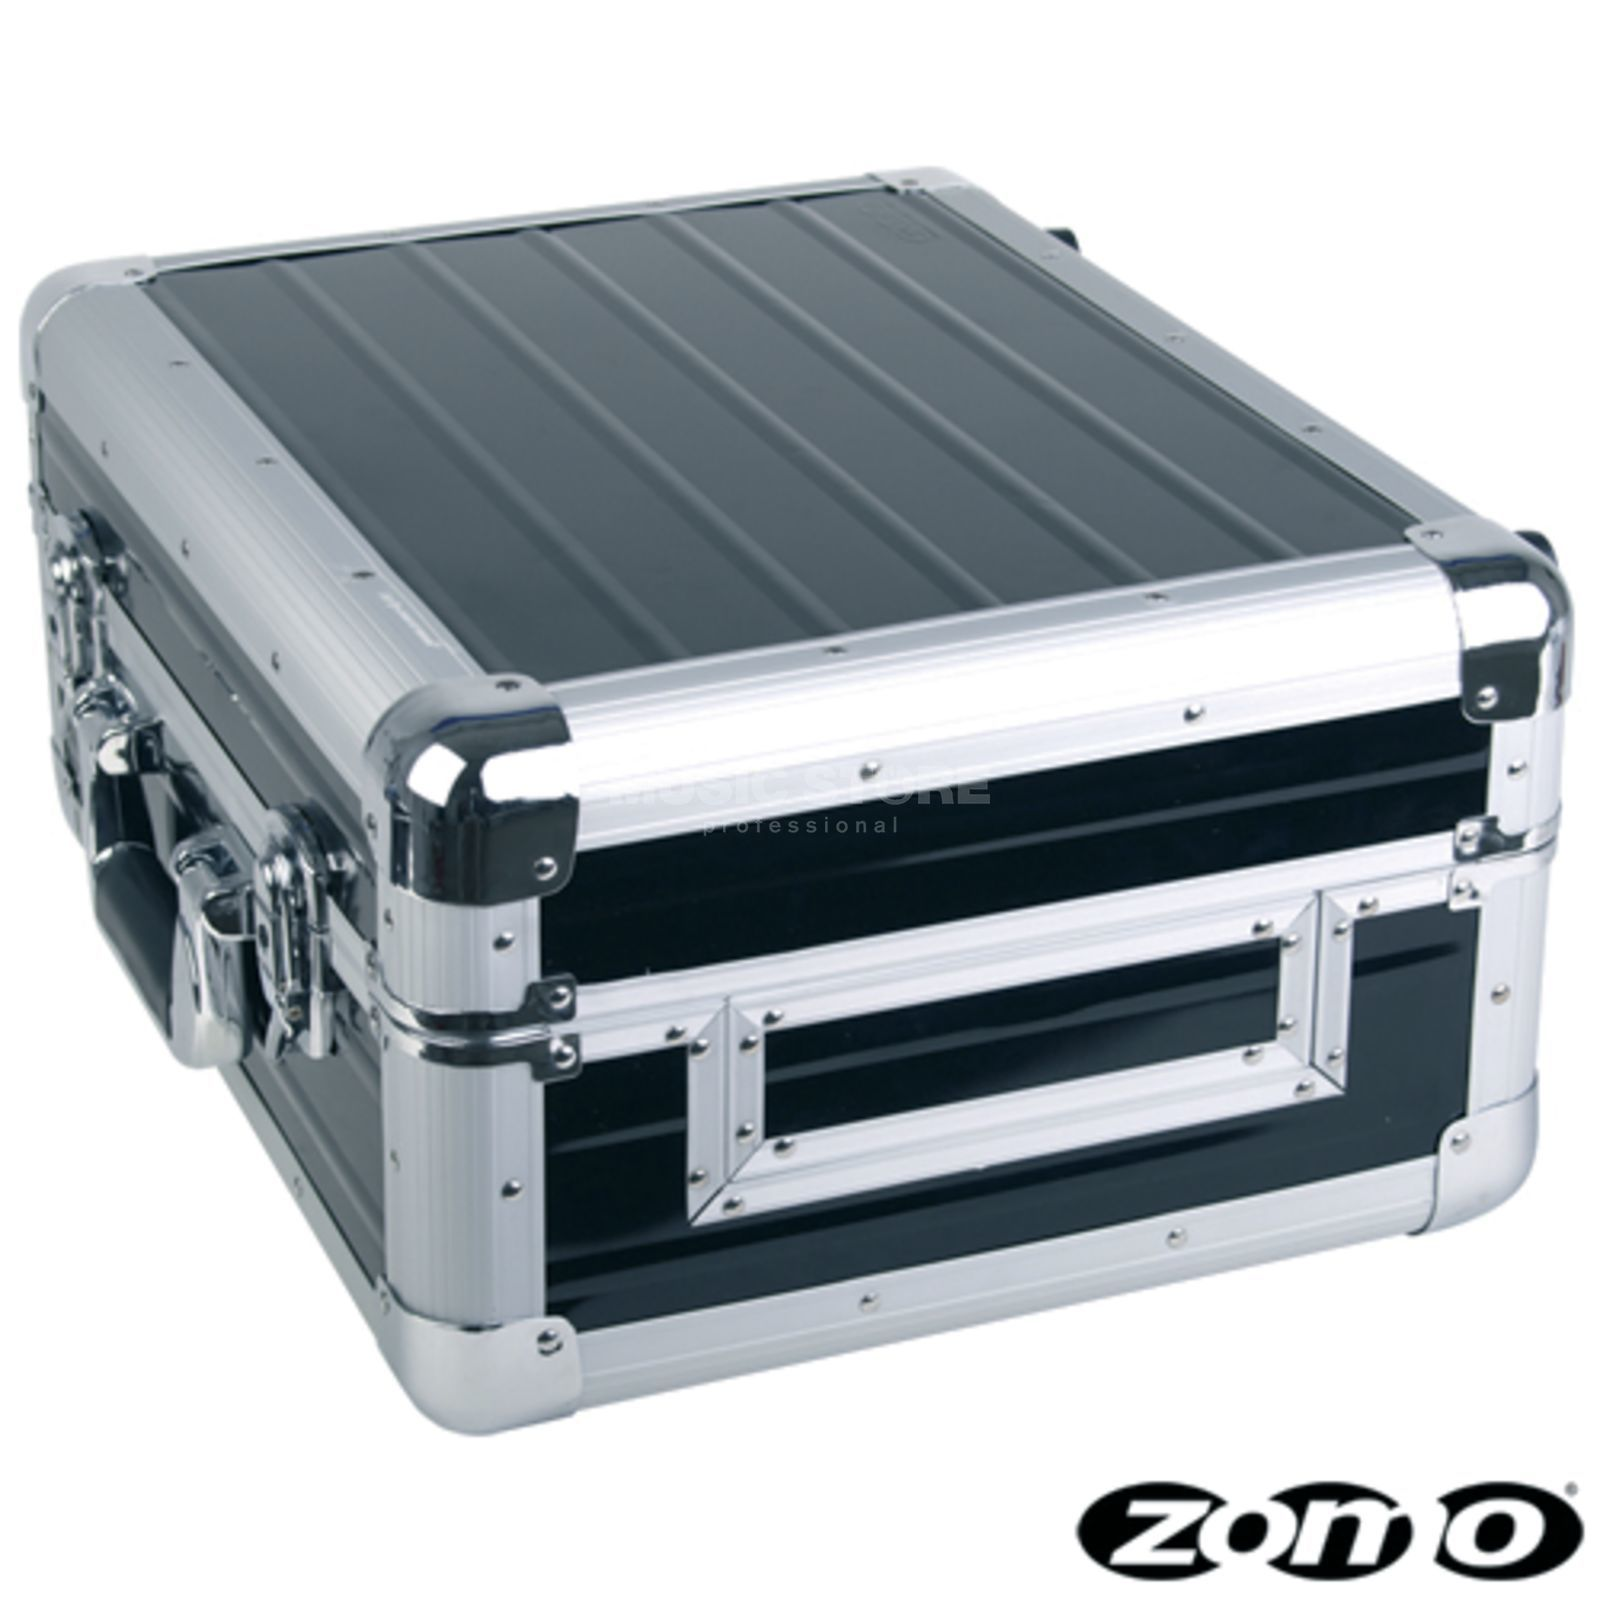 "Zomo Universal Case CDJ-1 XT black for CD-Player / 12"" Mixer Zdjęcie produktu"